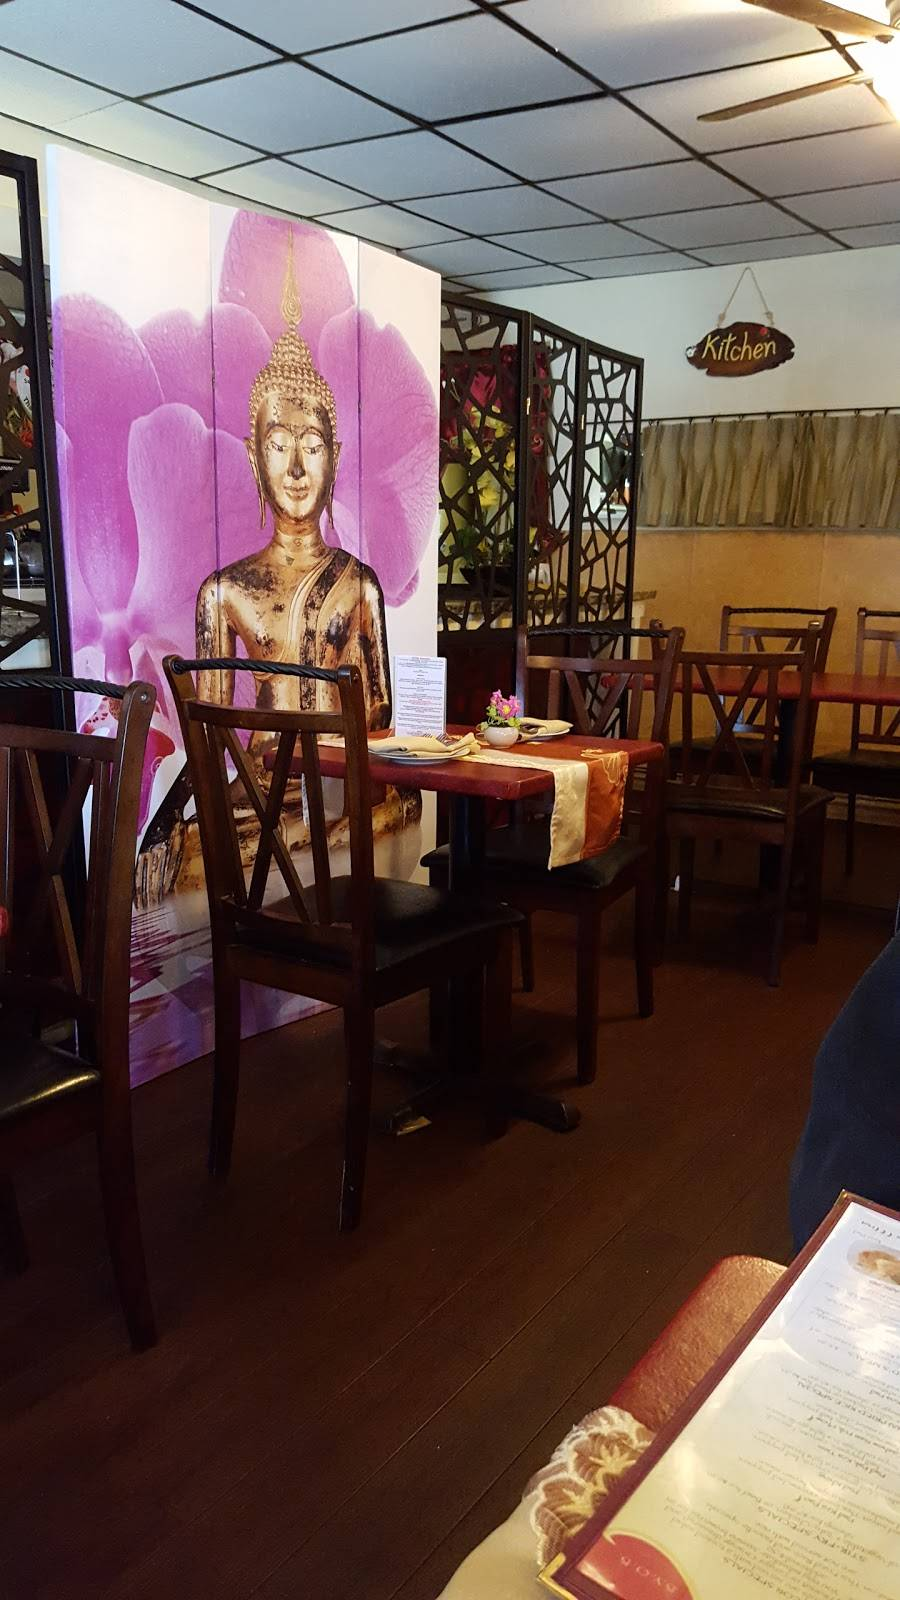 Twist On Thai Cafe   restaurant   430 River Styx Rd, Hopatcong, NJ 07843, USA   9738103777 OR +1 973-810-3777